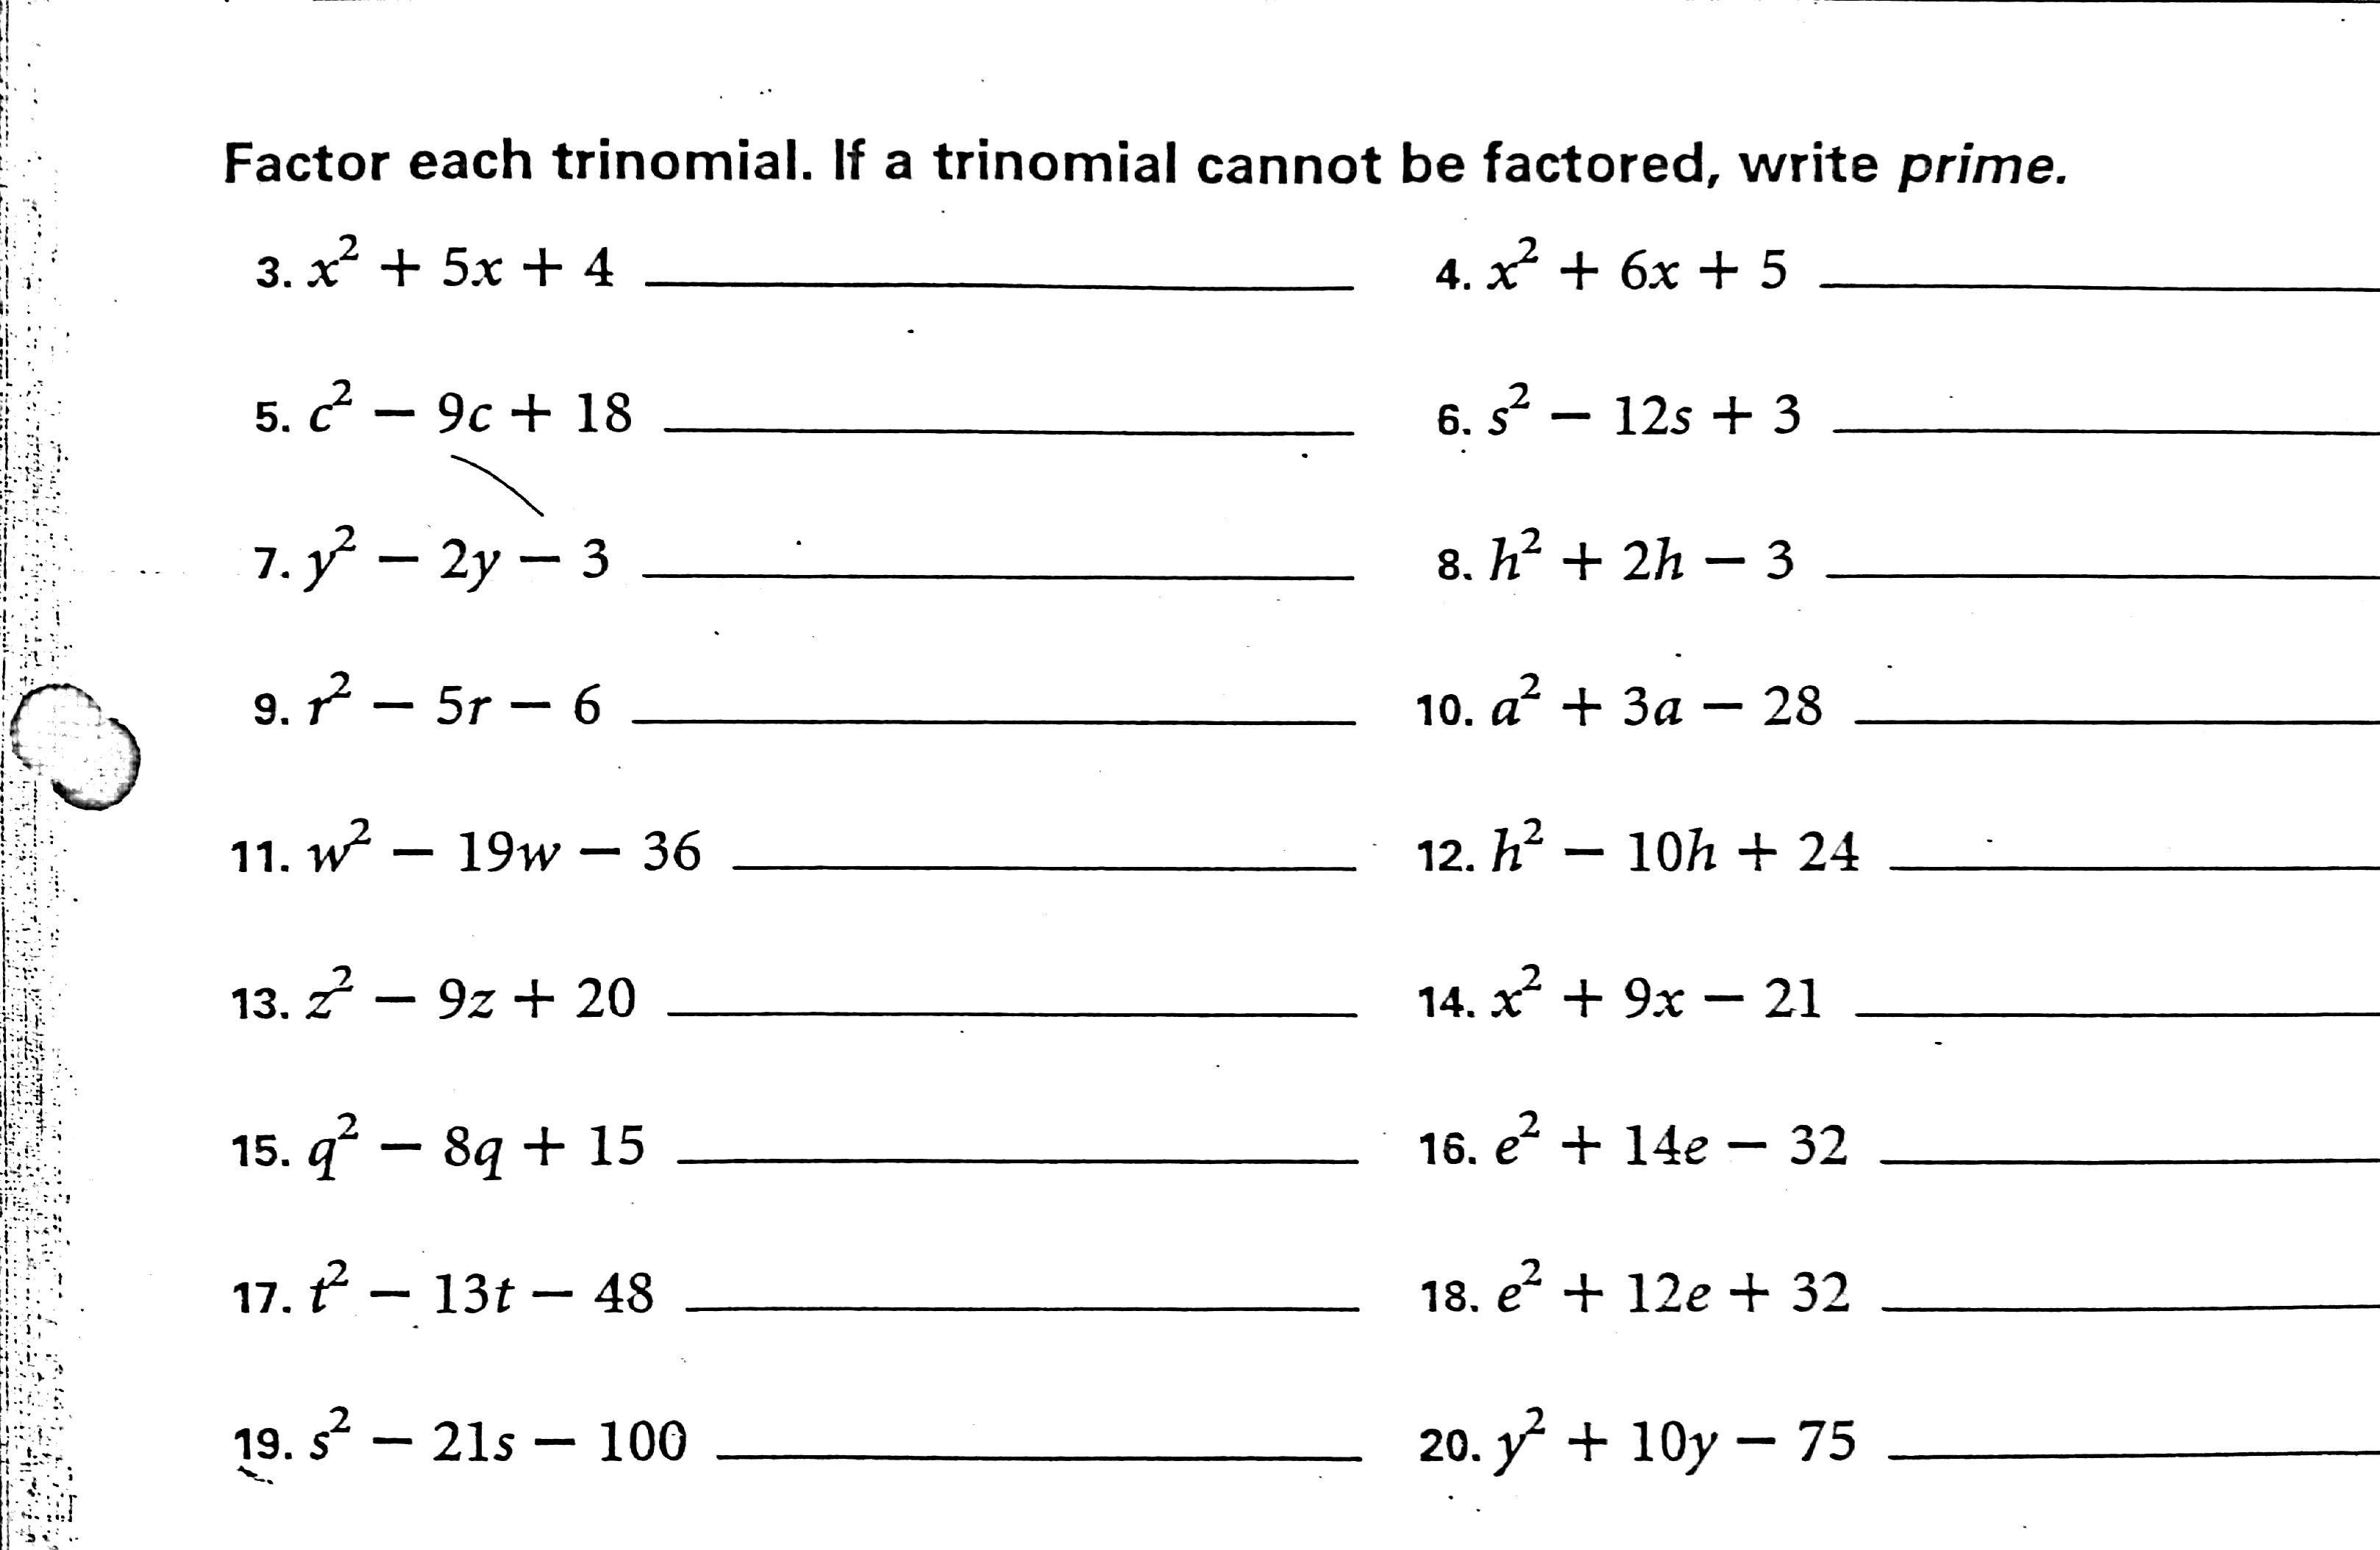 worksheet Perfect Squares Worksheet printables factoring perfect squares worksheet gozoneguide abitlikethis monday trinomials classwork 3 19 odd